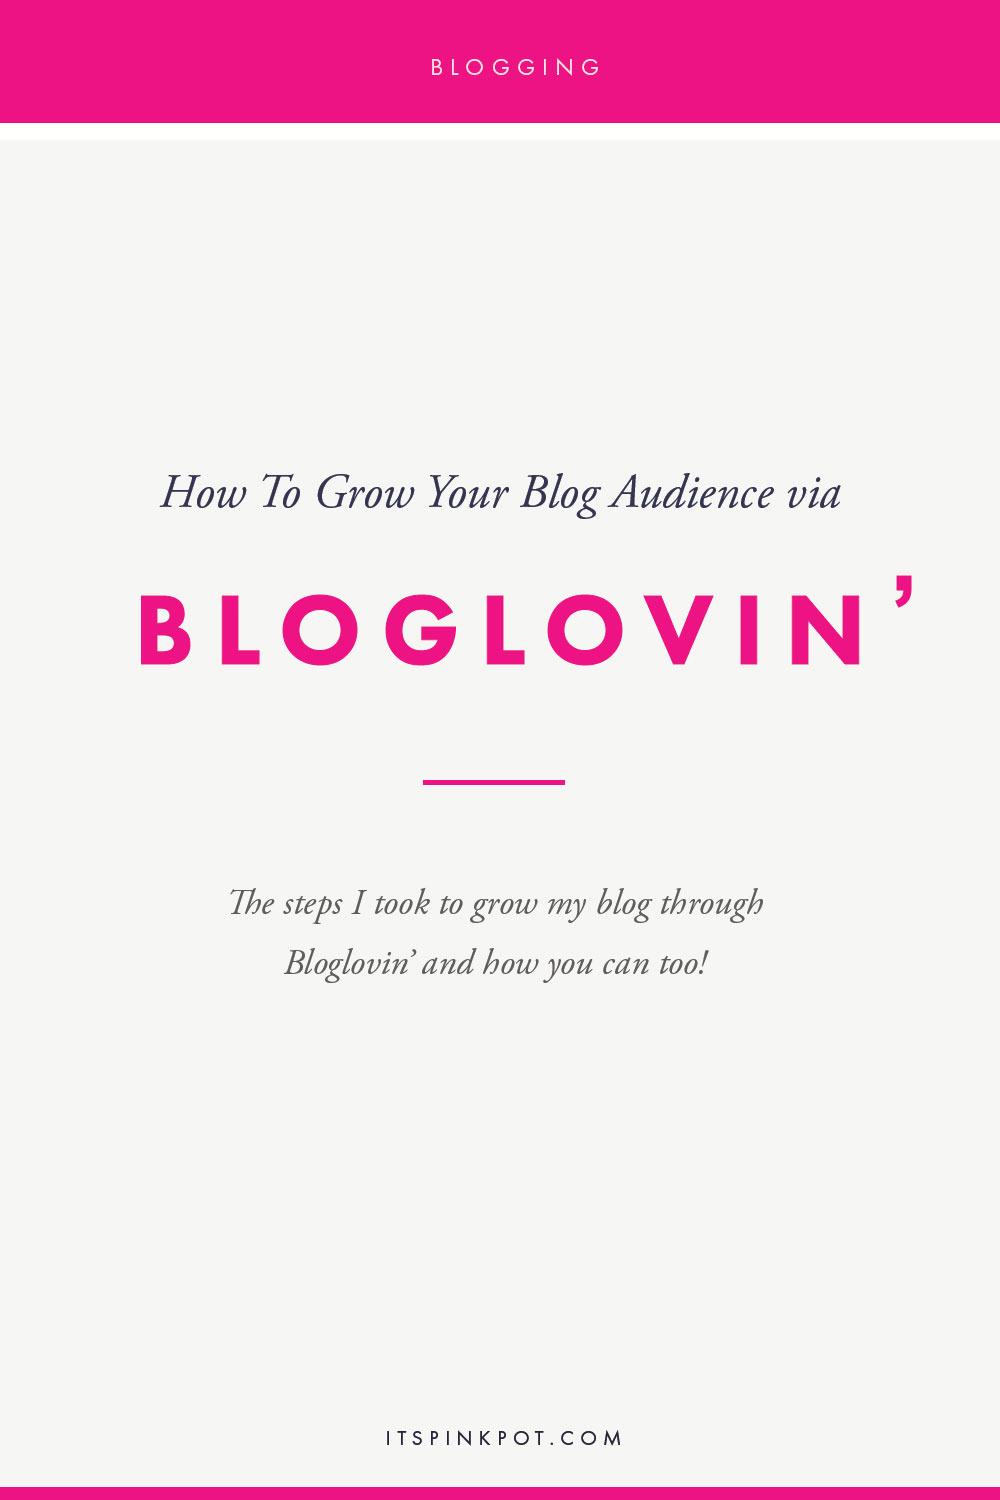 When I started blogging, one of the first ways people started finding my blog was via Bloglovin'. In fact, until a few months ago my top traffic referral was Bloglovin'( (recently Pinterest has become my hero!). If you are a new blogger or if you are yet to see results from bloglovin', here are my tips to get you going on the platform!